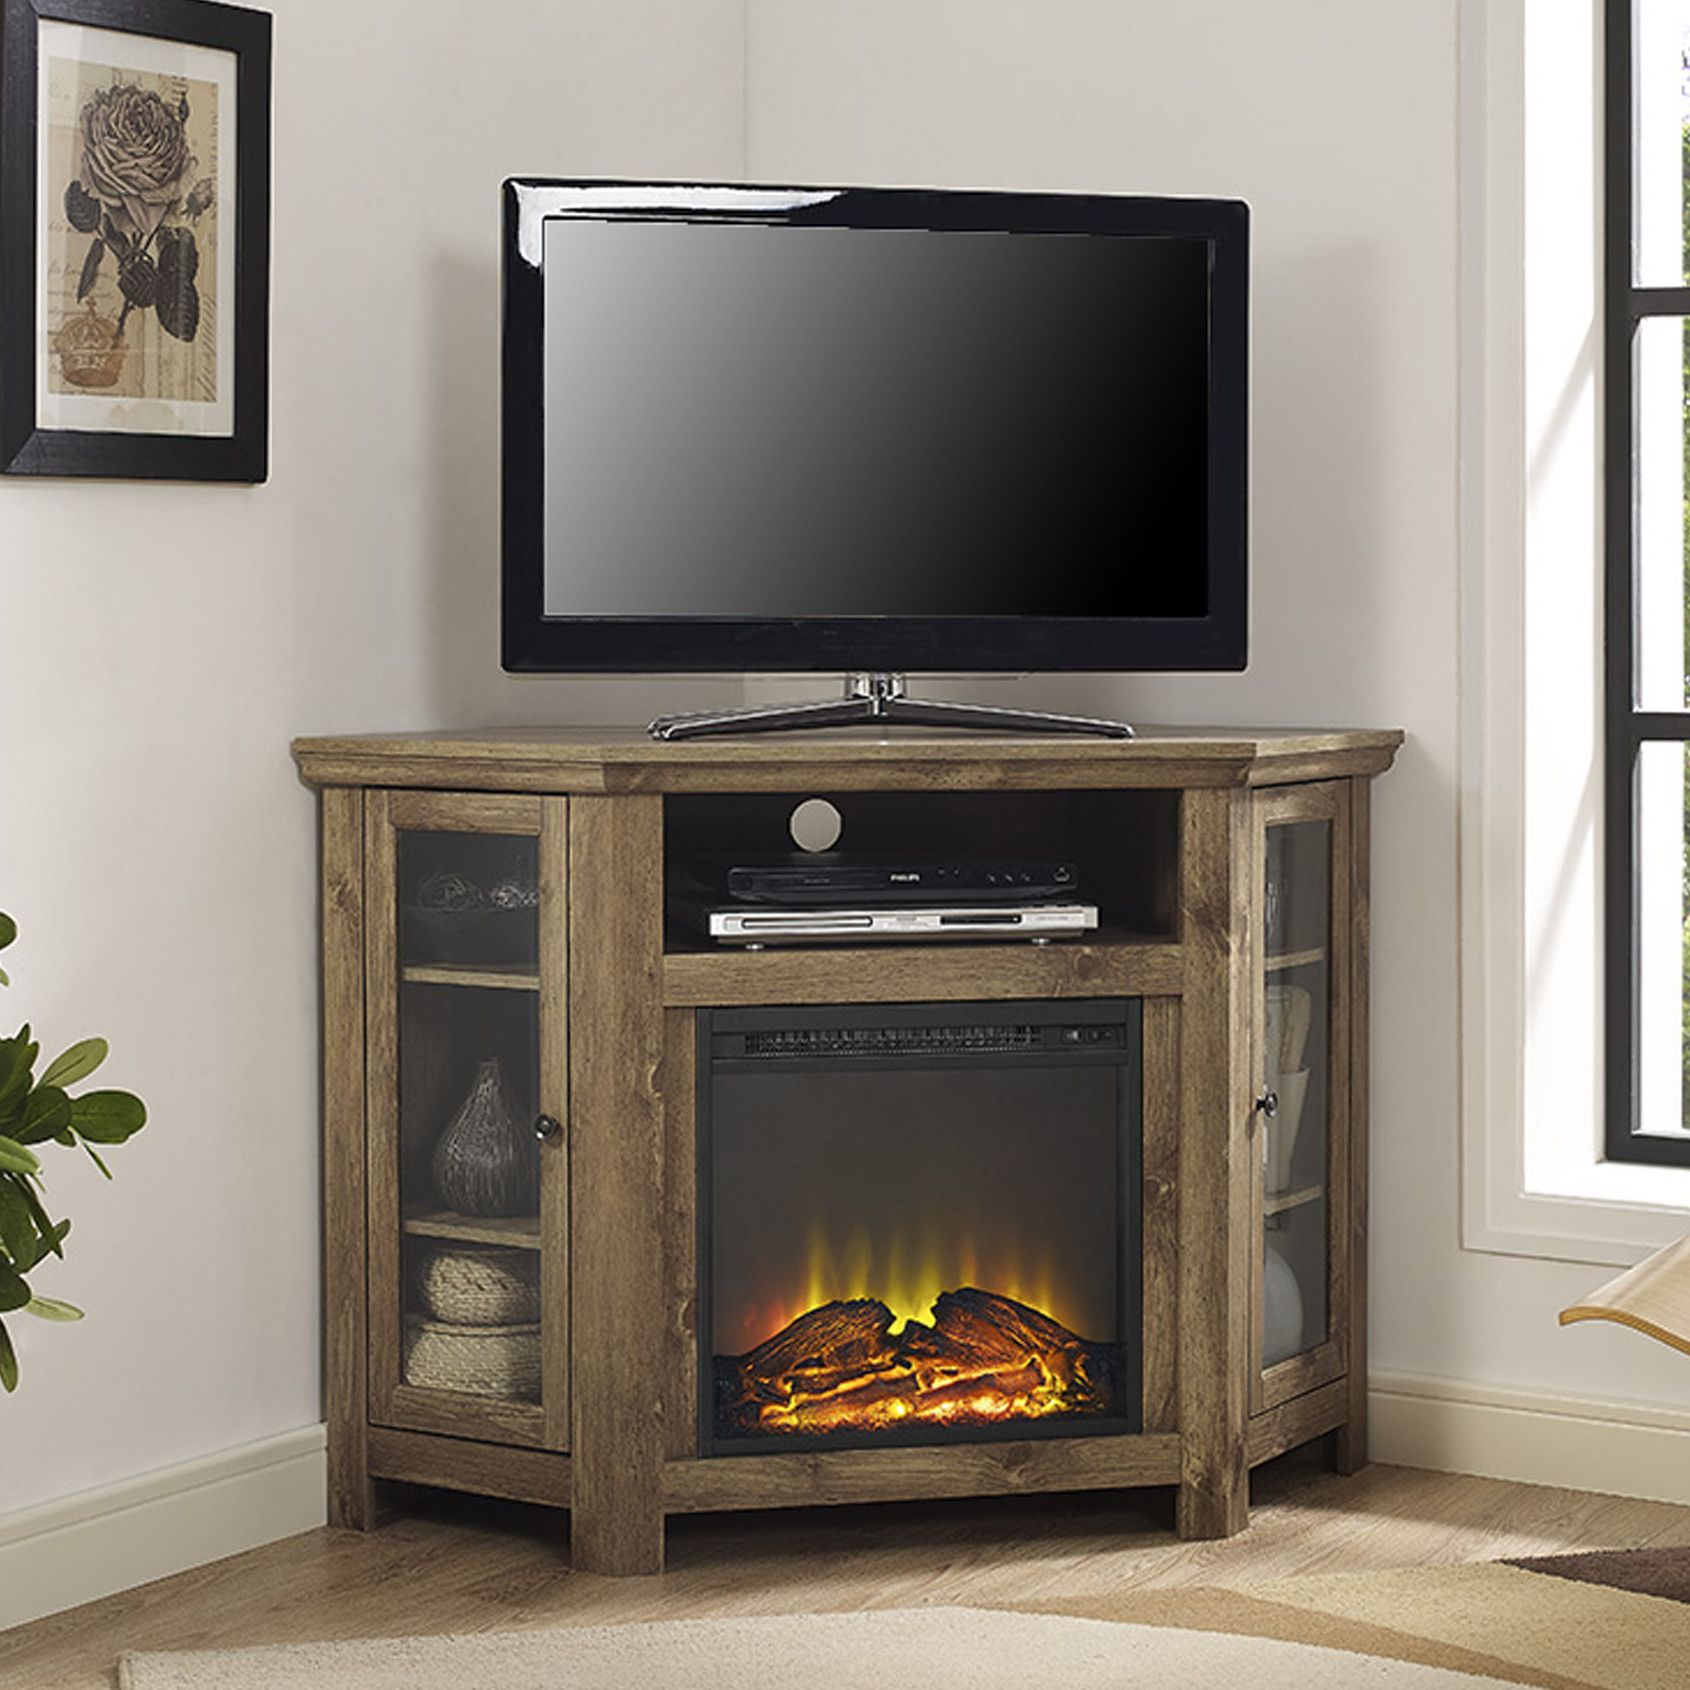 Corner Tv Stand With Electric Fireplace Corner Fireplace Tv Stand Fireplace Tv Stand Living Room Tv Stand